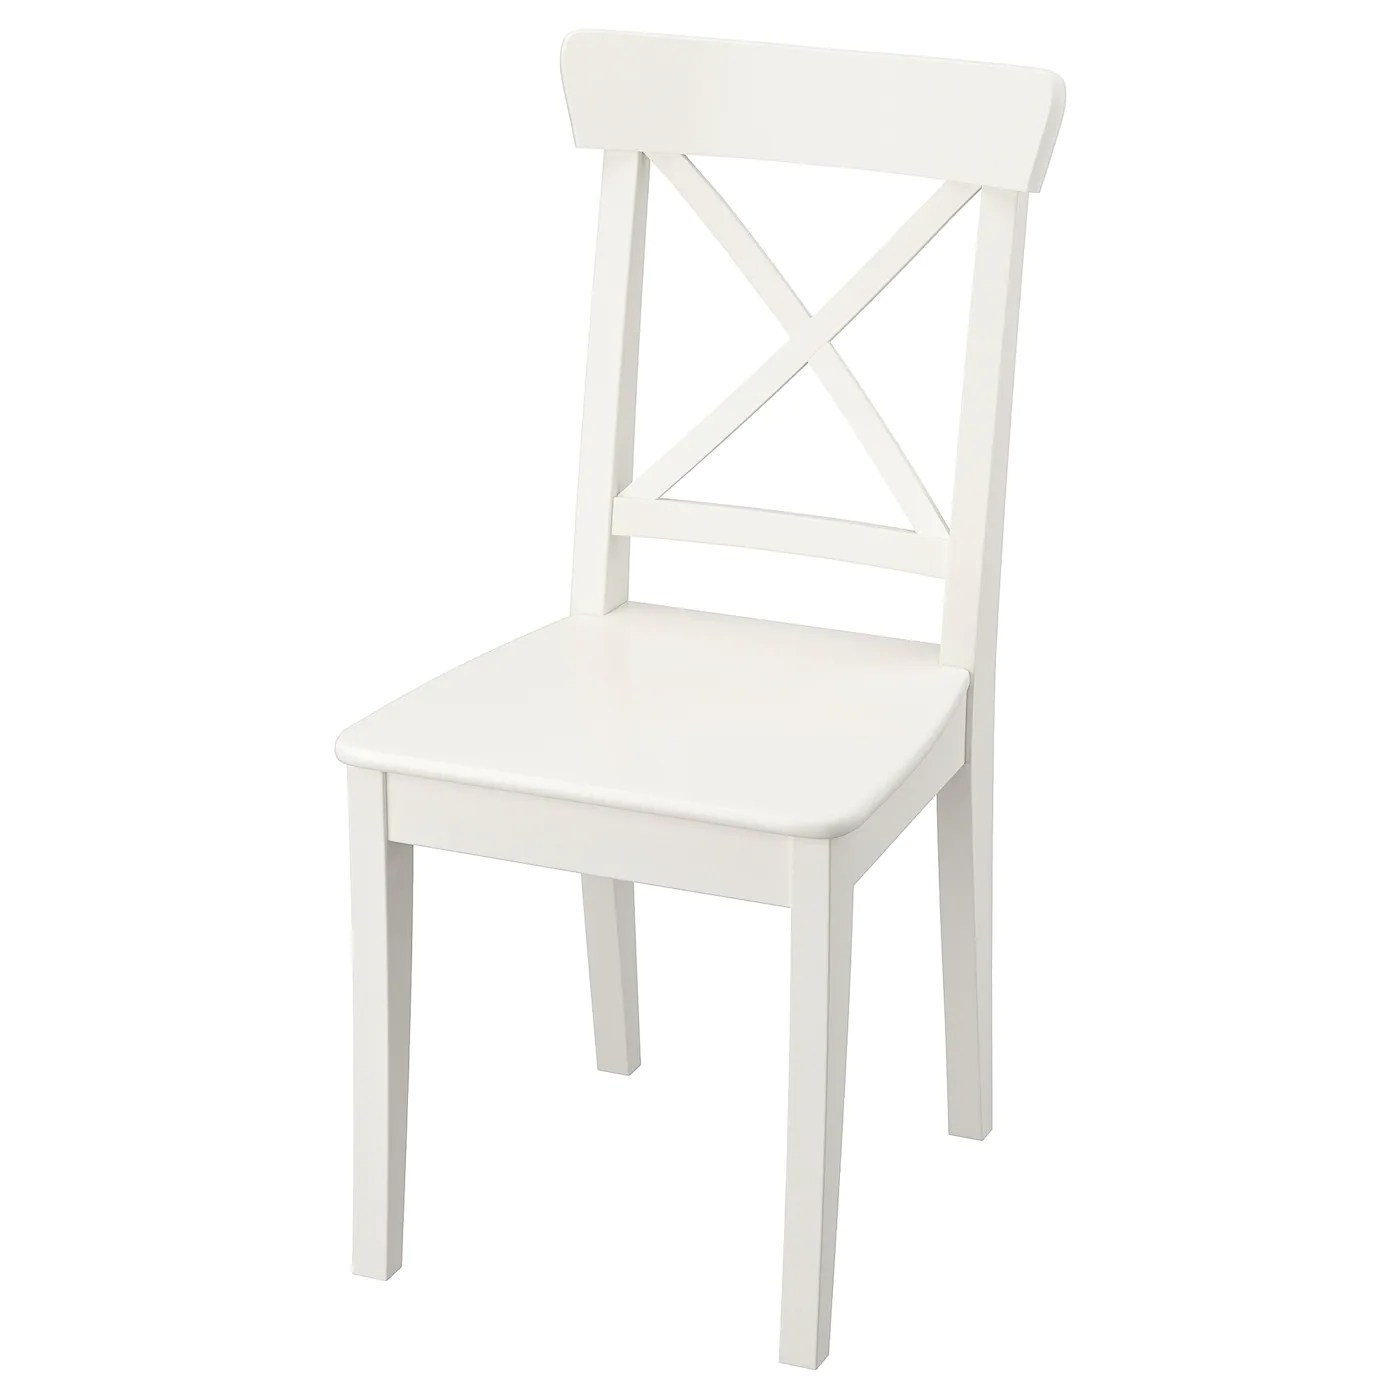 Metal Chairs Chairs Stools Benches Ikea